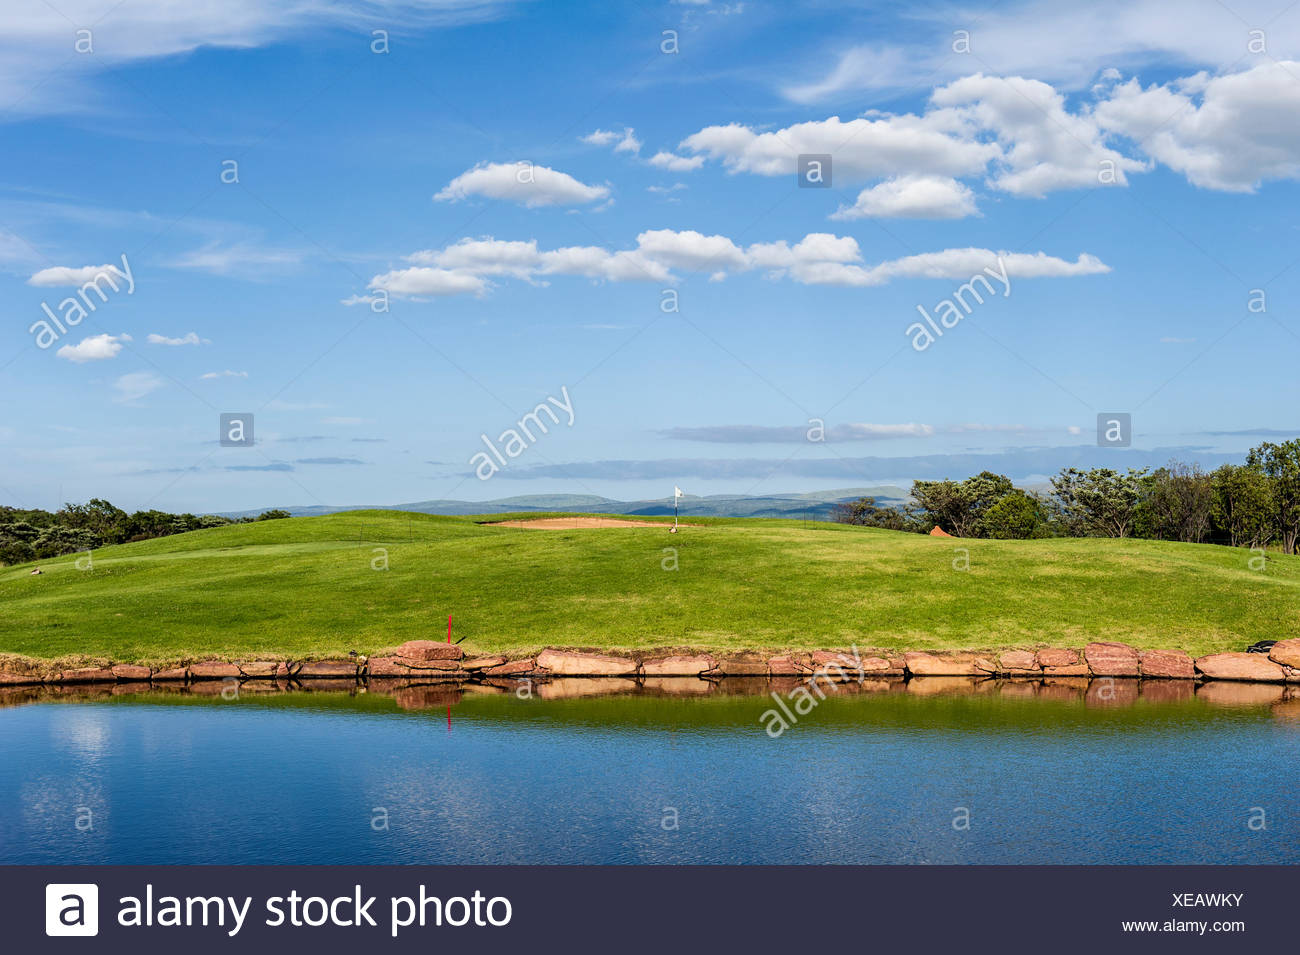 Morning view of a golf fairway and putting green beside a water trap. - Stock Image